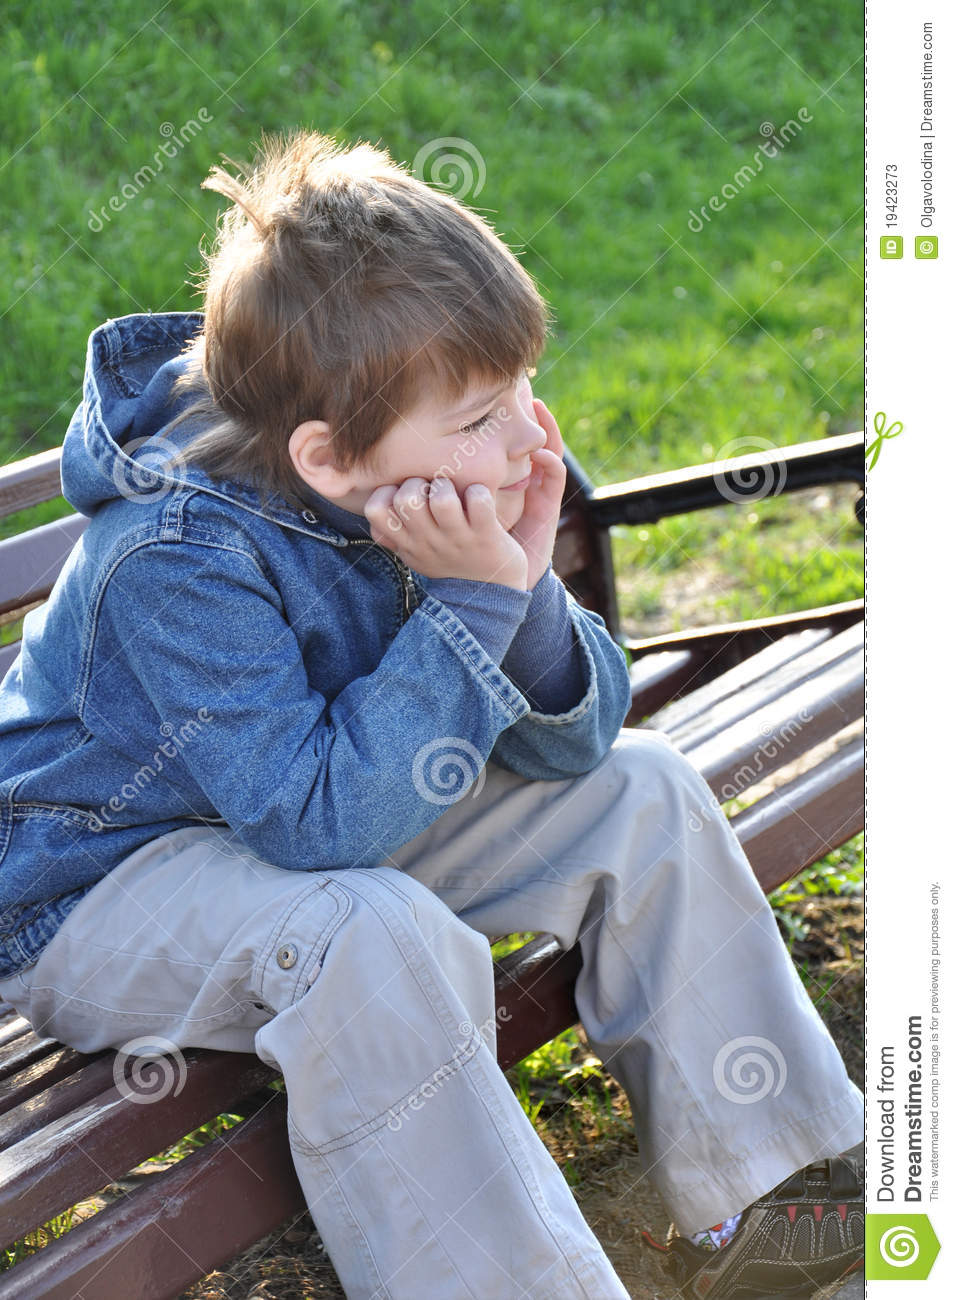 Pensive Boy Sitting On A Park Bench Stock Photos Image